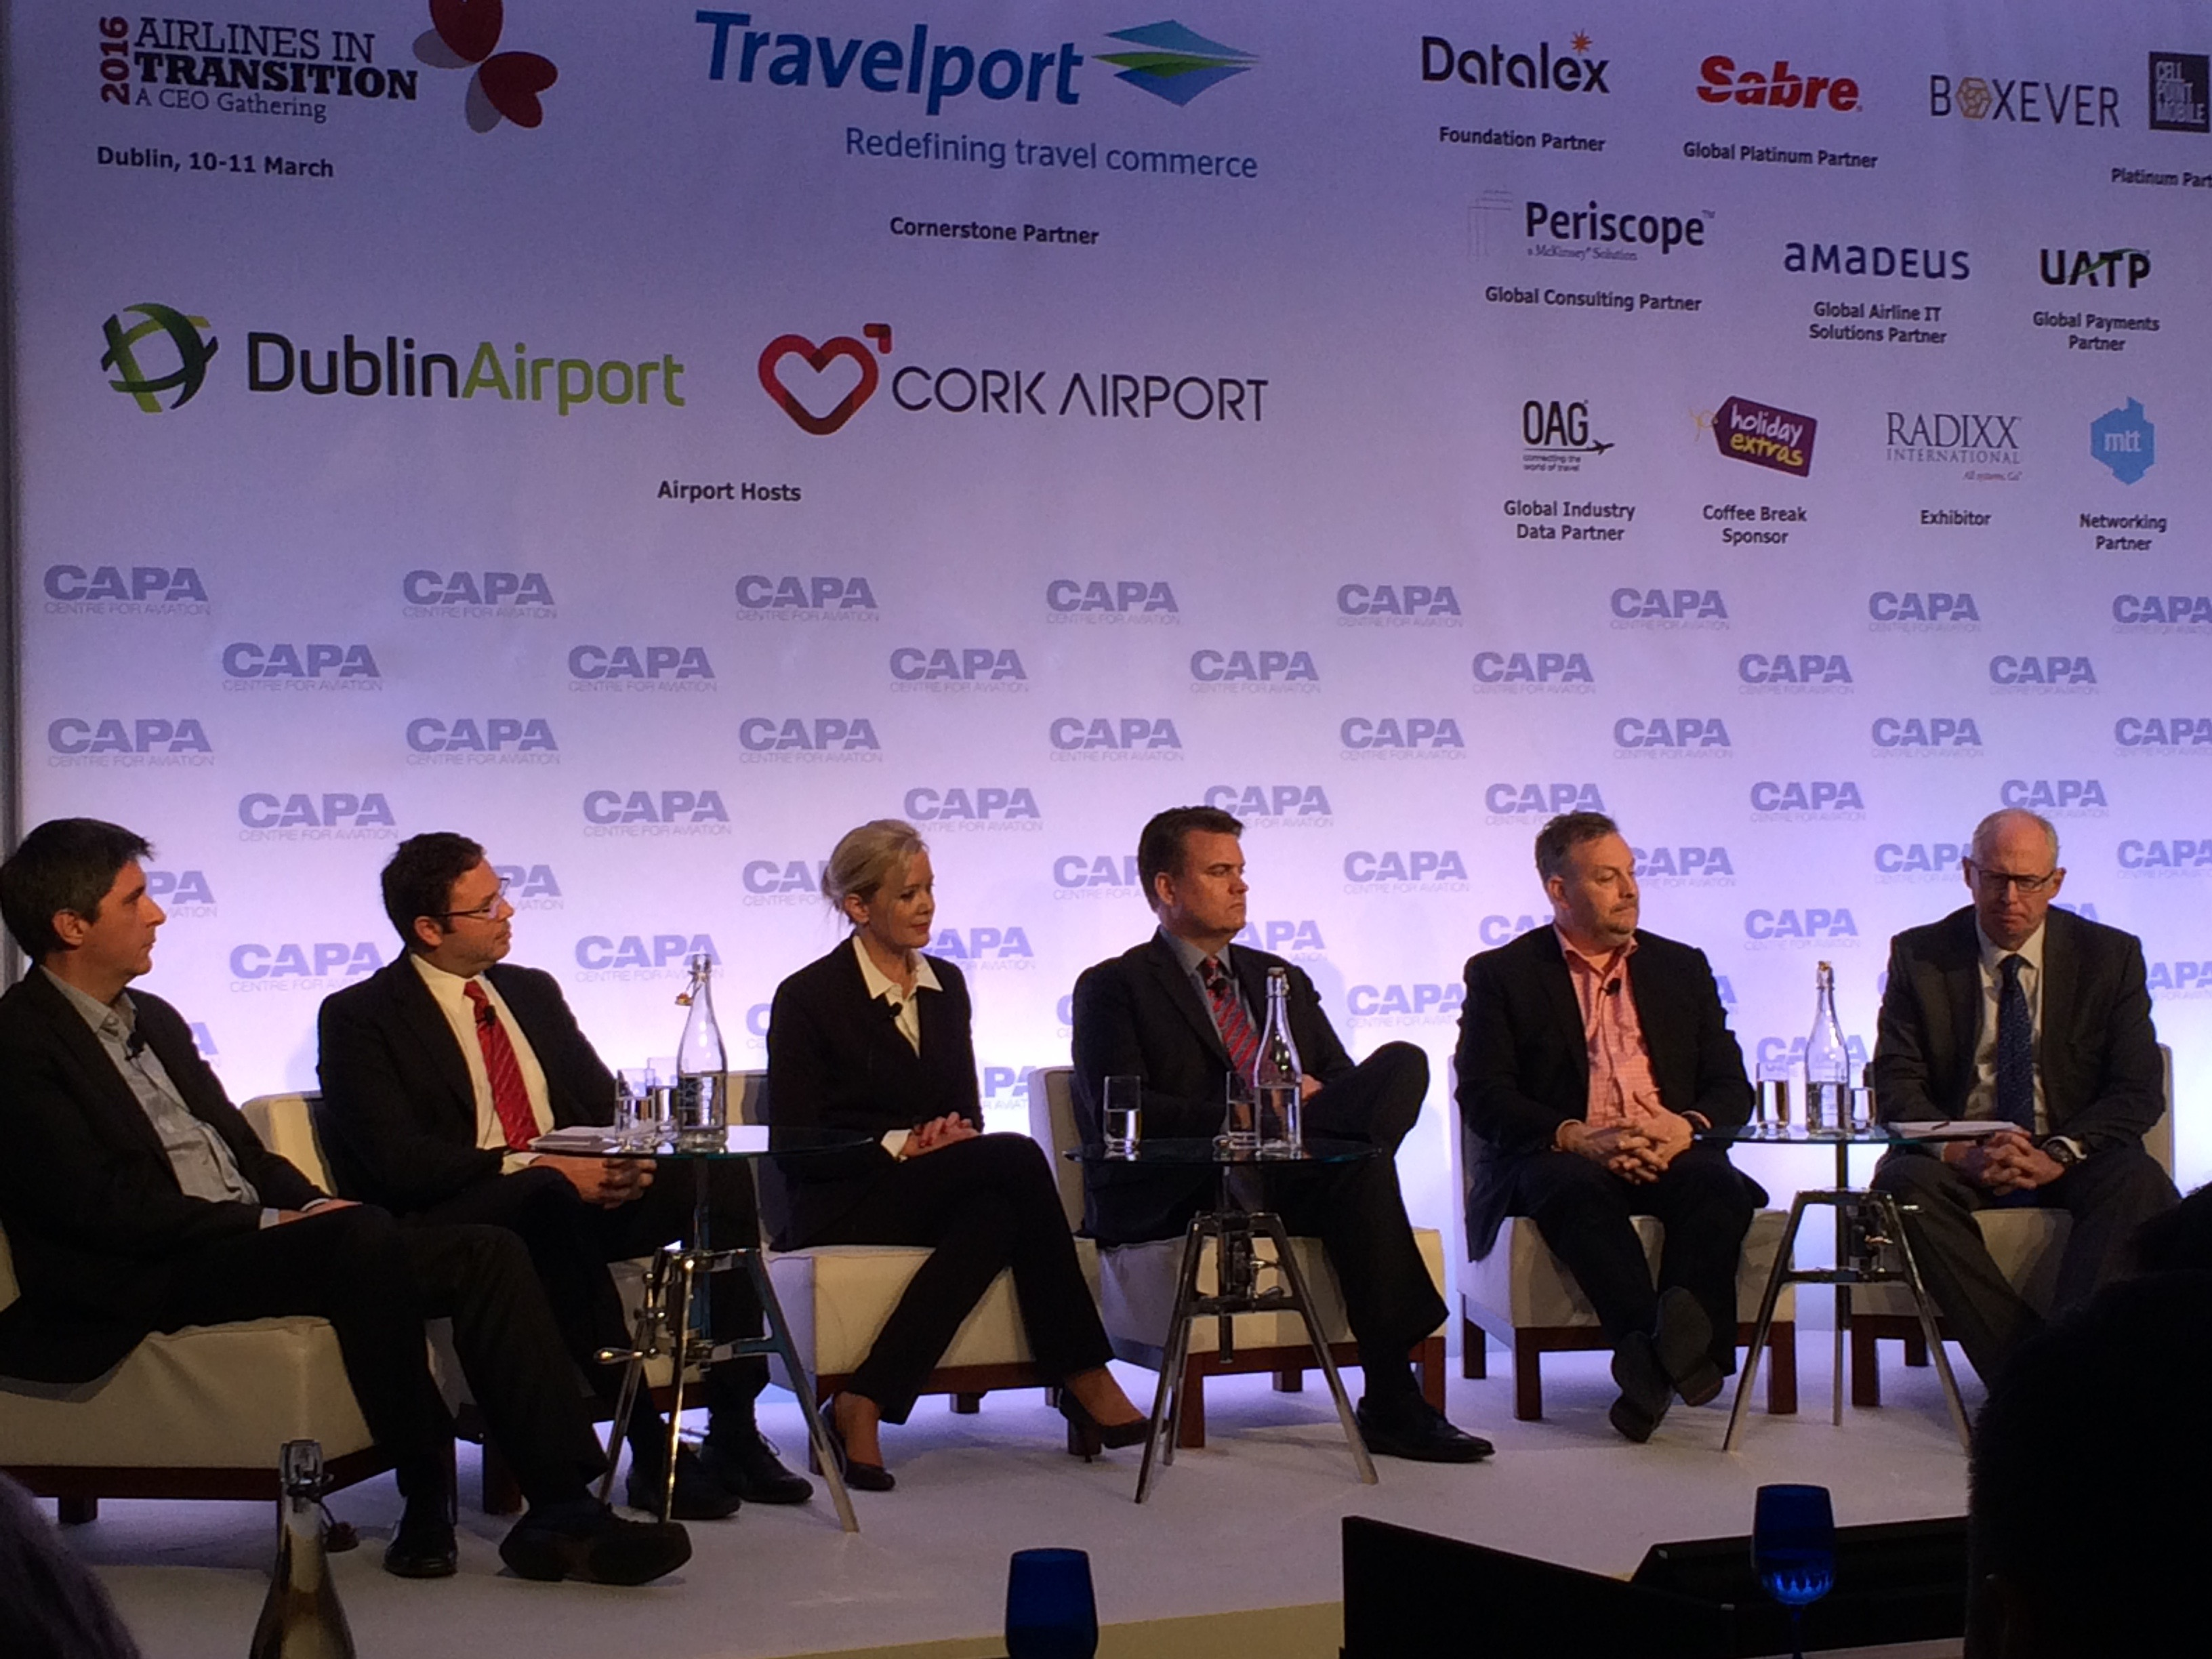 Panel discussion at the CAPA Summit 2016, Dublin